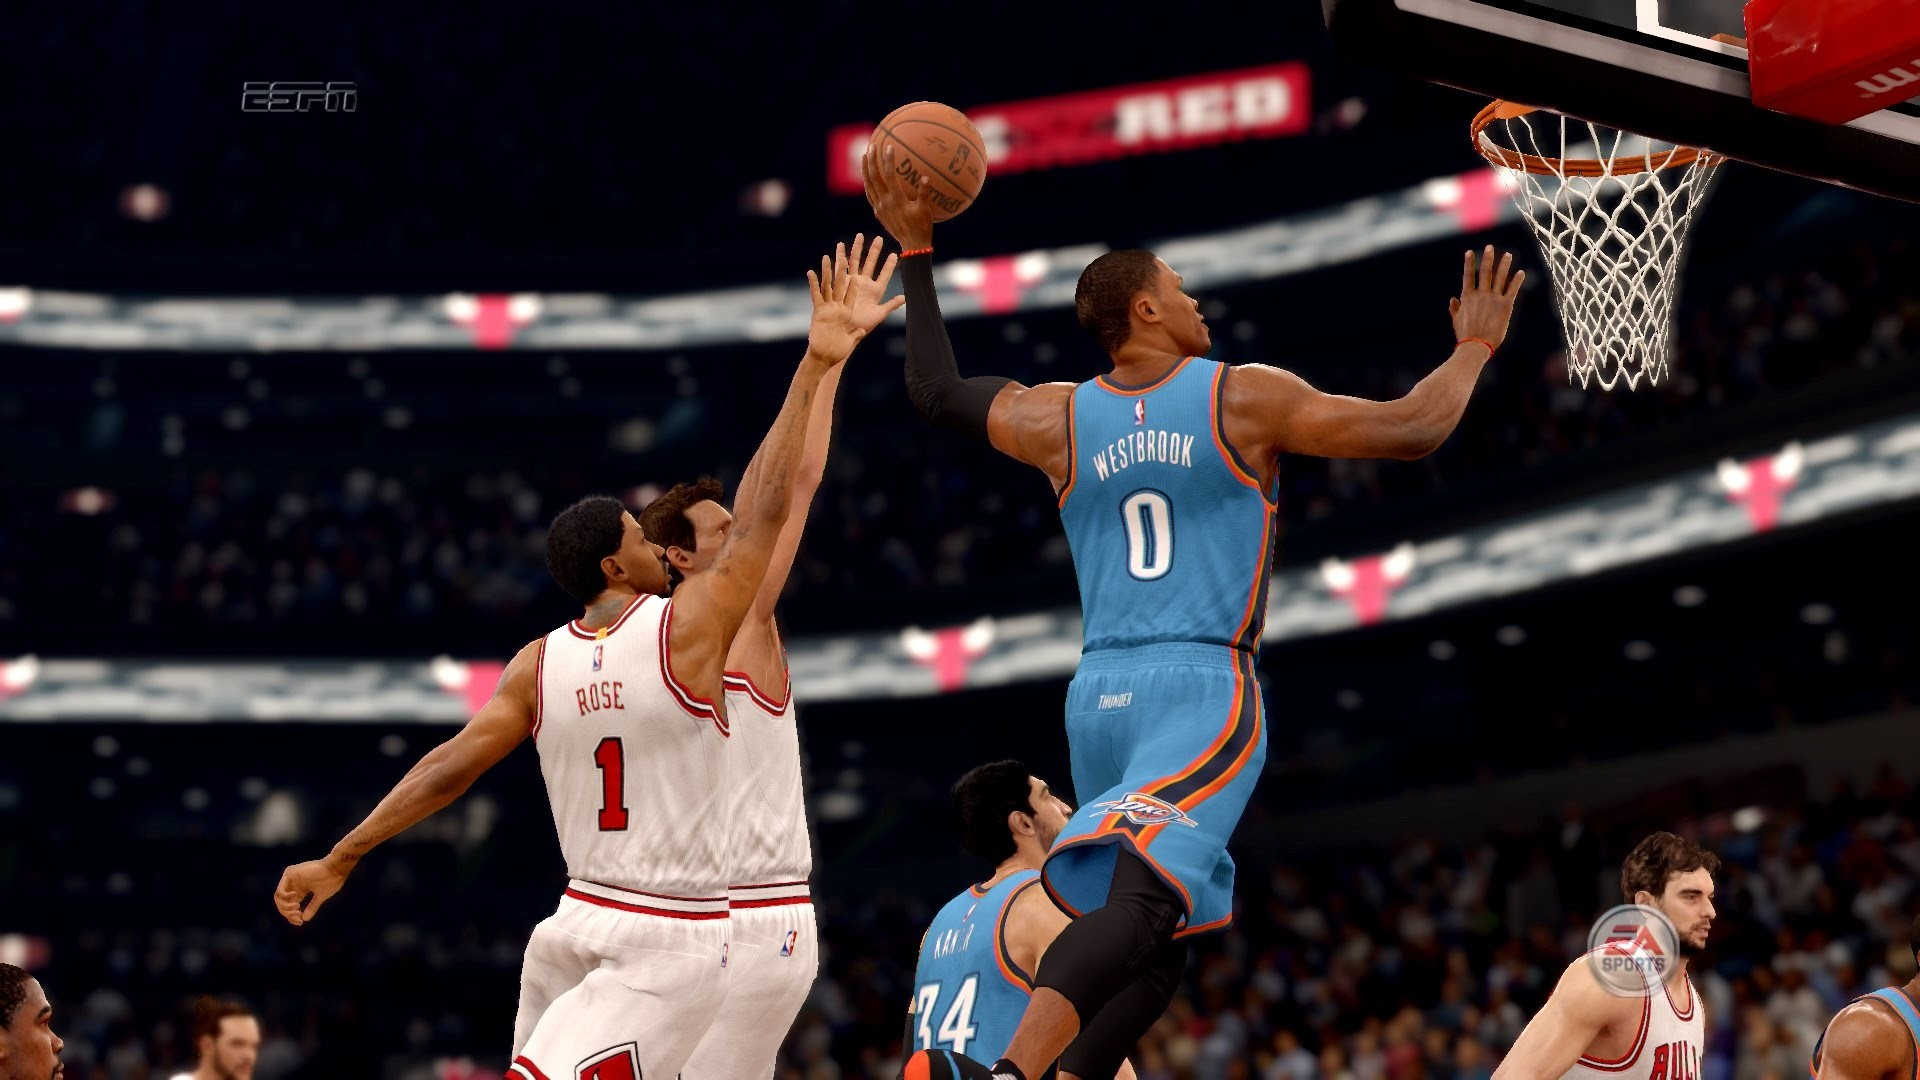 NBA LIVE 16 – Russel Westbrook Sick 1 Handed Dunk [1080p 60fps] – YouTube